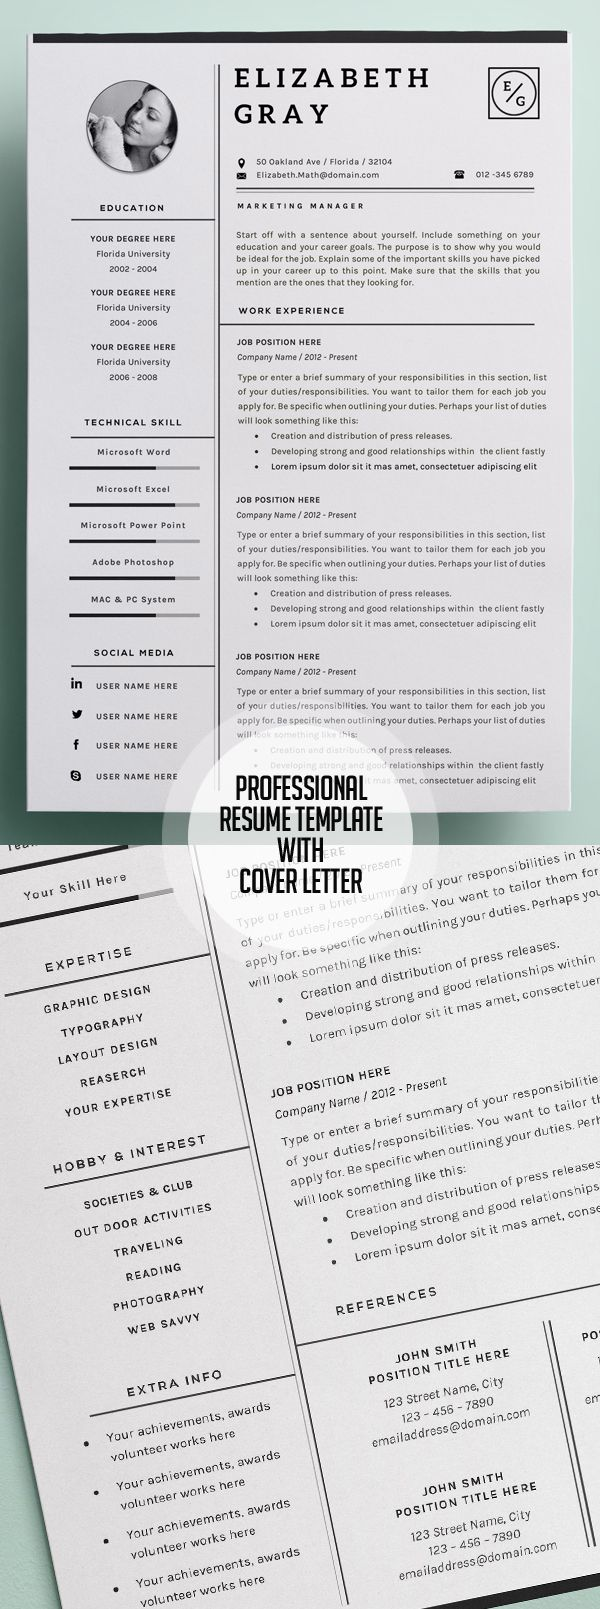 Opposenewapstandardsus  Unique  Resume Ideas On Pinterest  Resume Resume Templates And  With Interesting Professional And Modern Resume Template With Page Cover Cvtemplate With Delectable Hot To Make A Resume Also Free Resume Search Engines For Employers In Addition Does Word Have A Resume Template And Resume For Writers As Well As Resume Objective For Warehouse Worker Additionally Best Resume Skills From Pinterestcom With Opposenewapstandardsus  Interesting  Resume Ideas On Pinterest  Resume Resume Templates And  With Delectable Professional And Modern Resume Template With Page Cover Cvtemplate And Unique Hot To Make A Resume Also Free Resume Search Engines For Employers In Addition Does Word Have A Resume Template From Pinterestcom